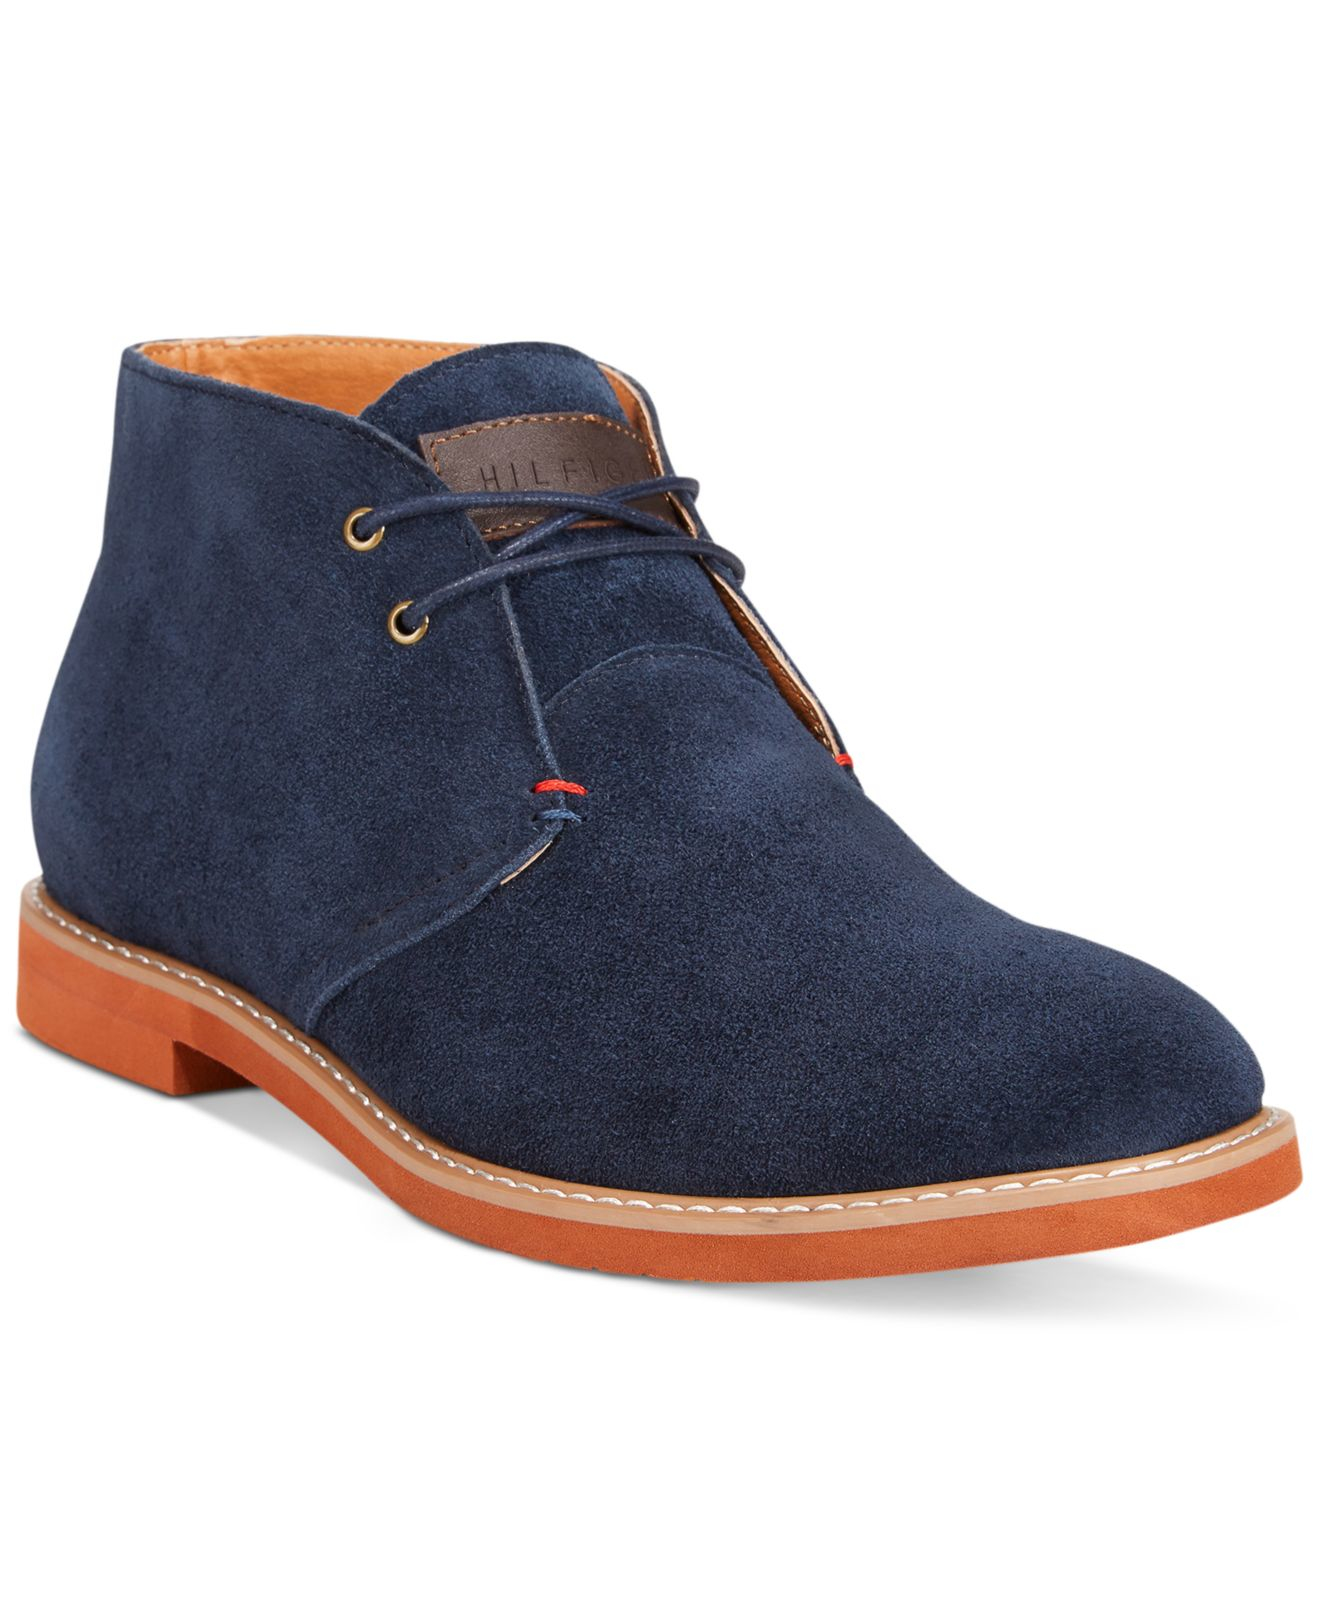 tommy hilfiger stetsen high boots in blue for men lyst. Black Bedroom Furniture Sets. Home Design Ideas